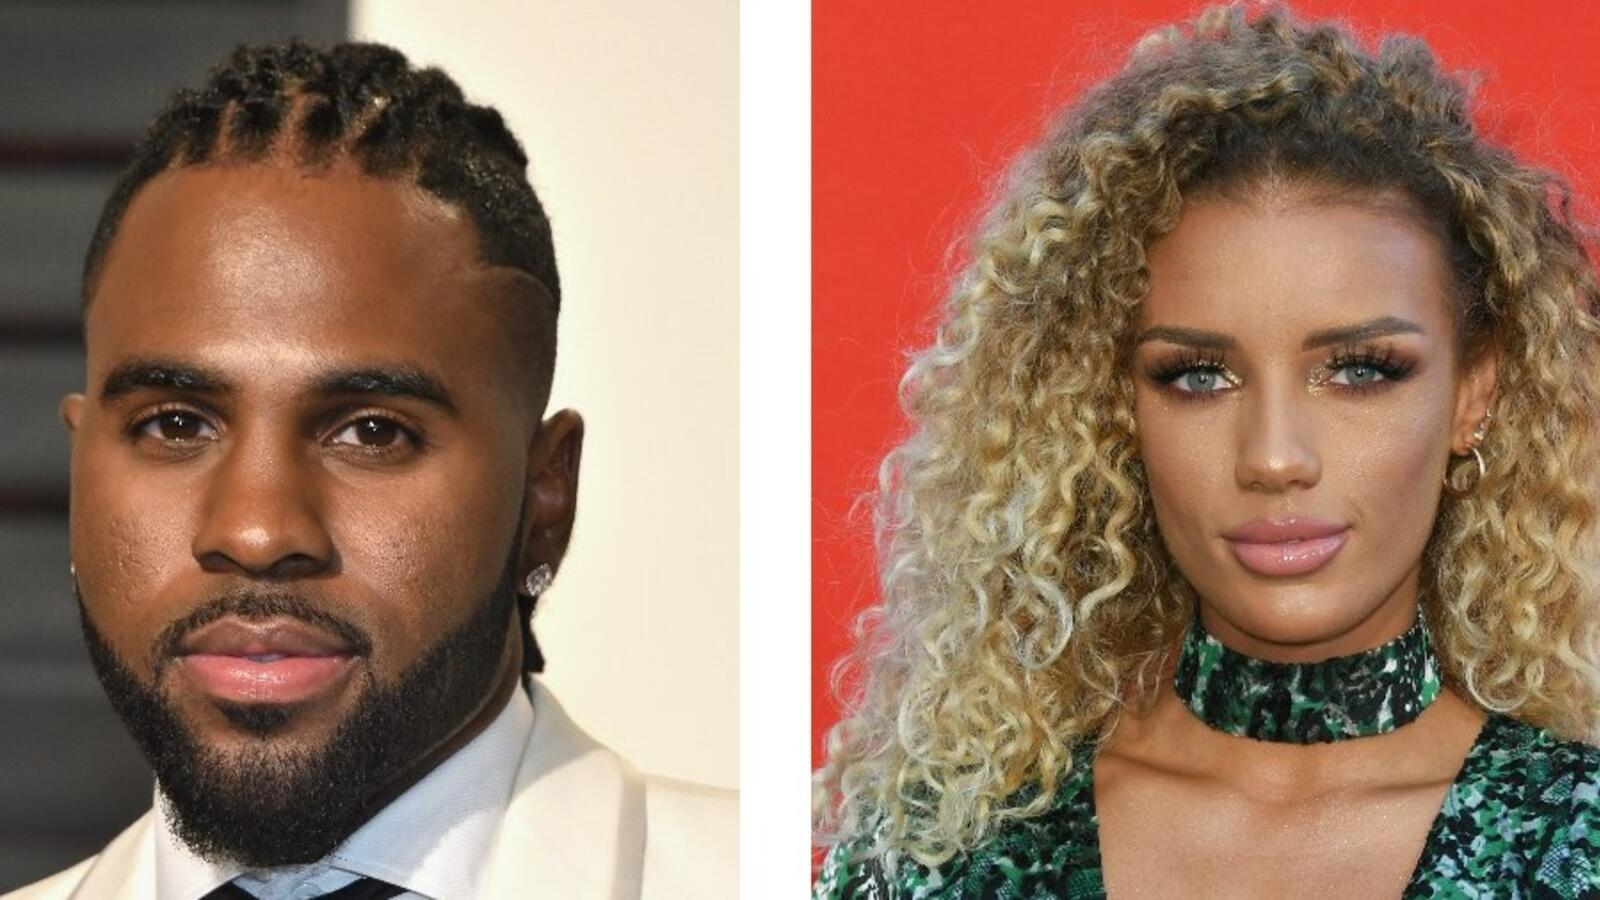 Jason Derulo And Jena Frumes Call It Quits Four Months After Son's Birth